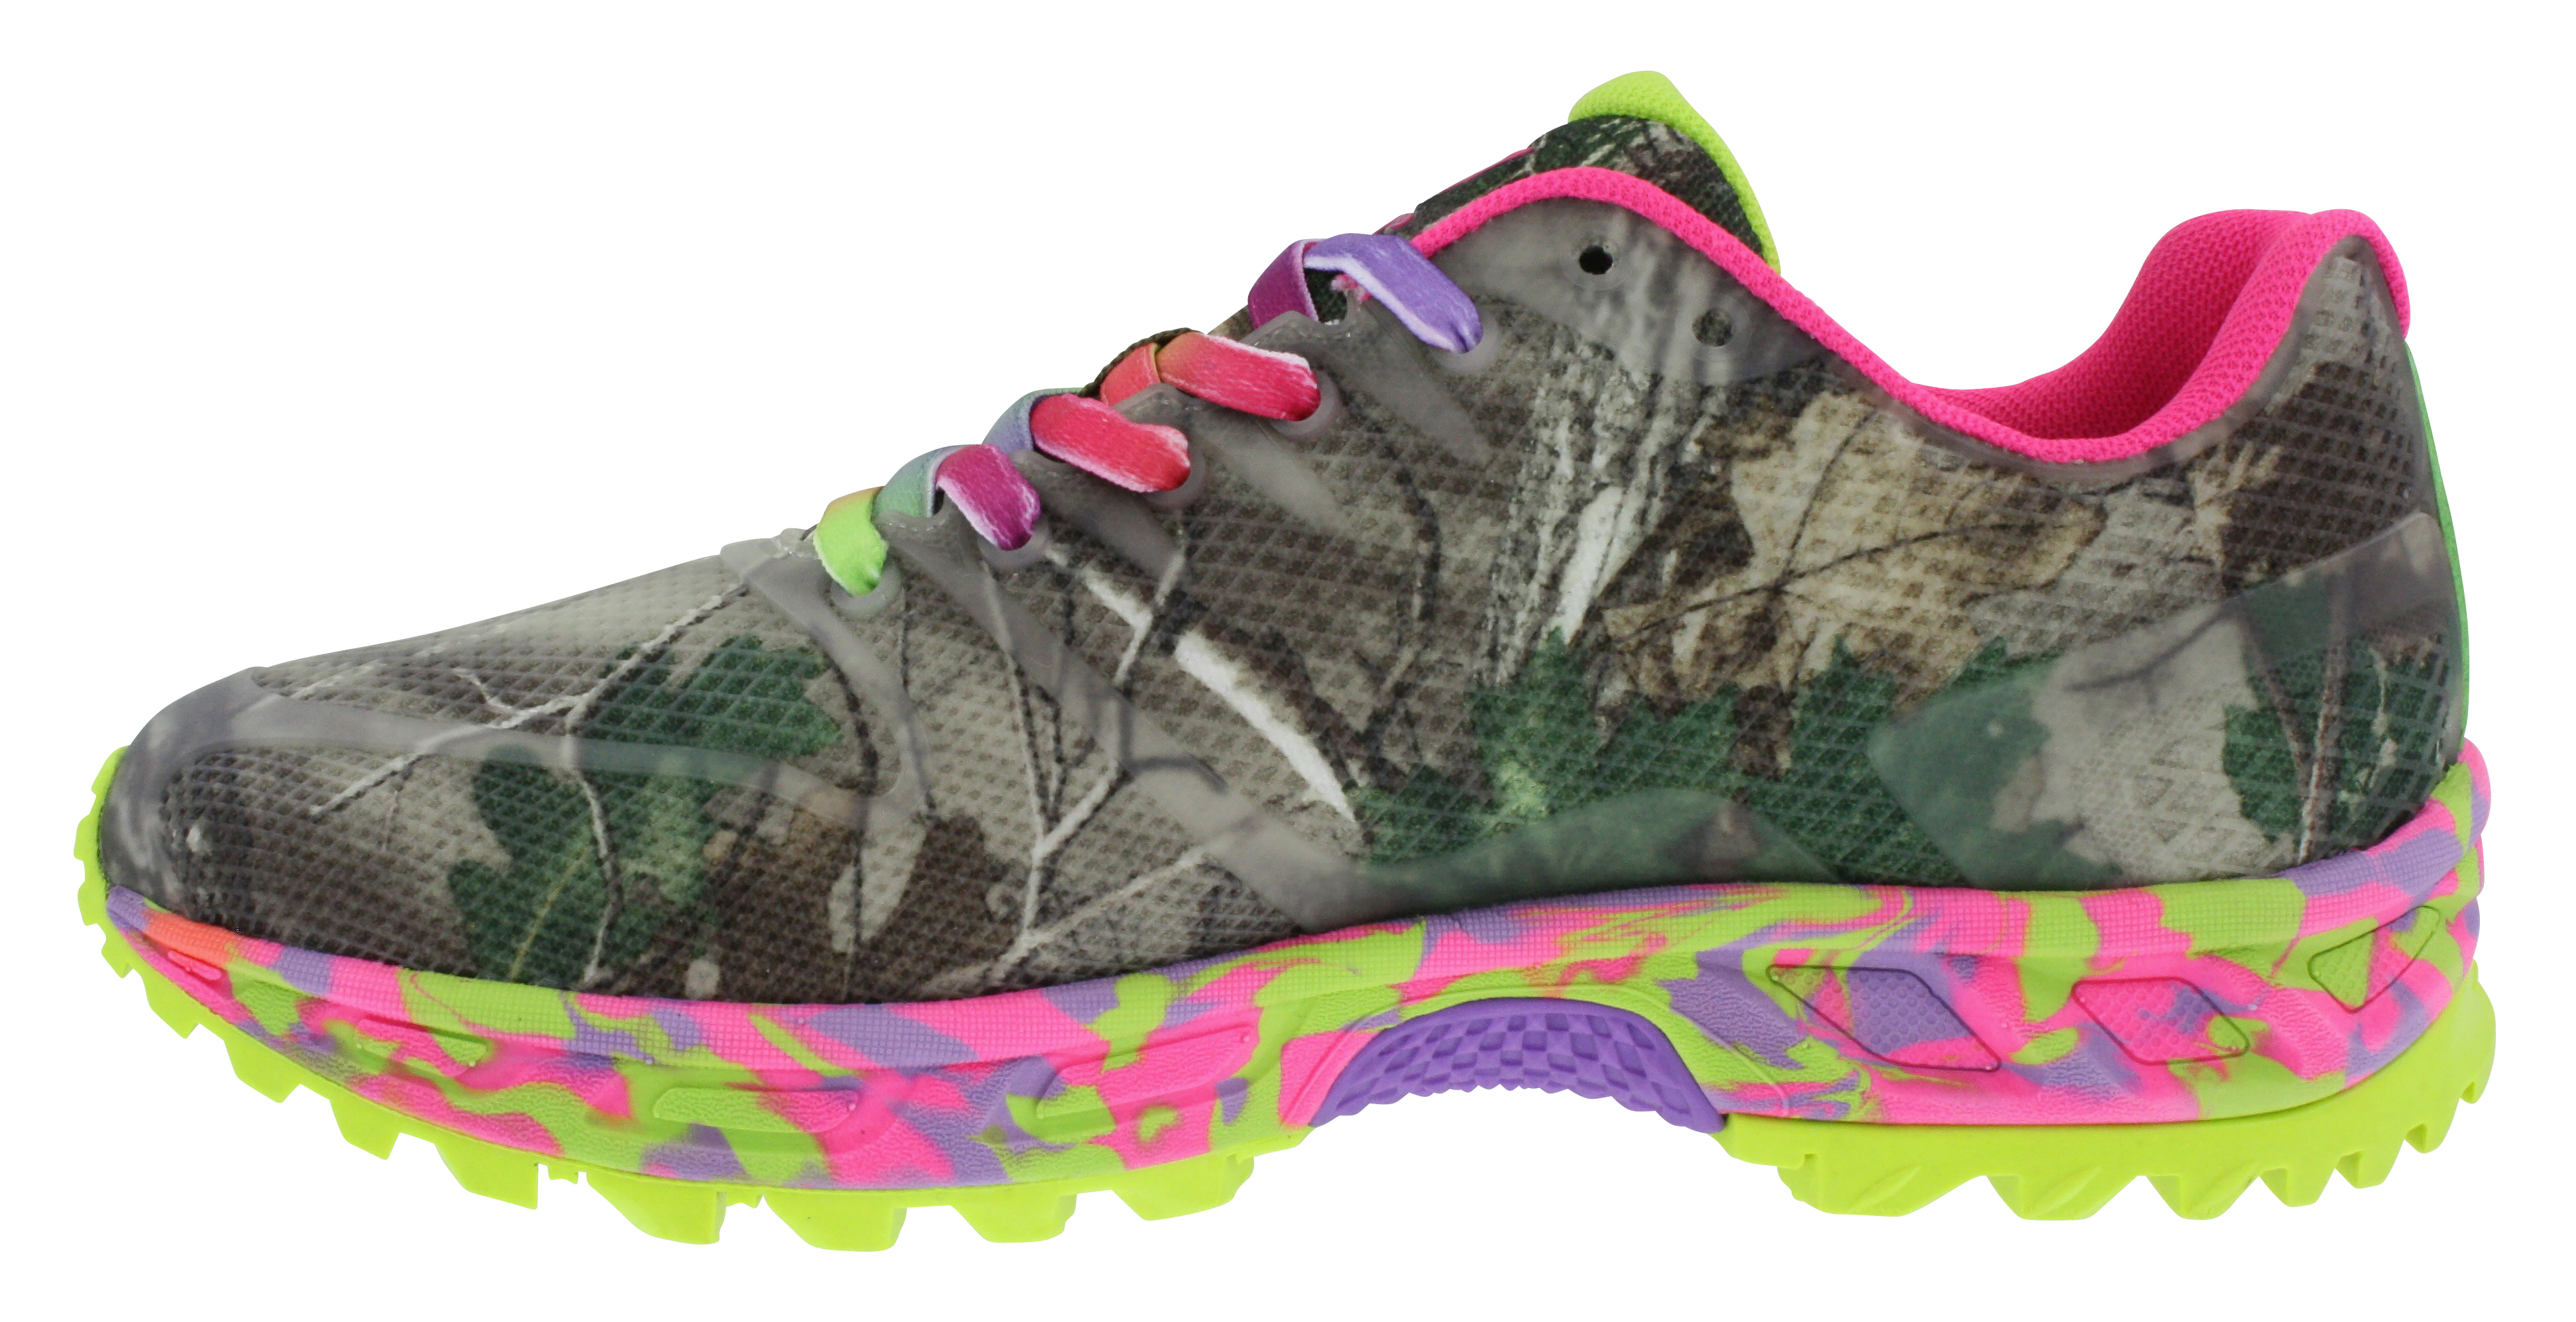 Realtree Girl^ Women's Mamba Hiking Shoes | Academy